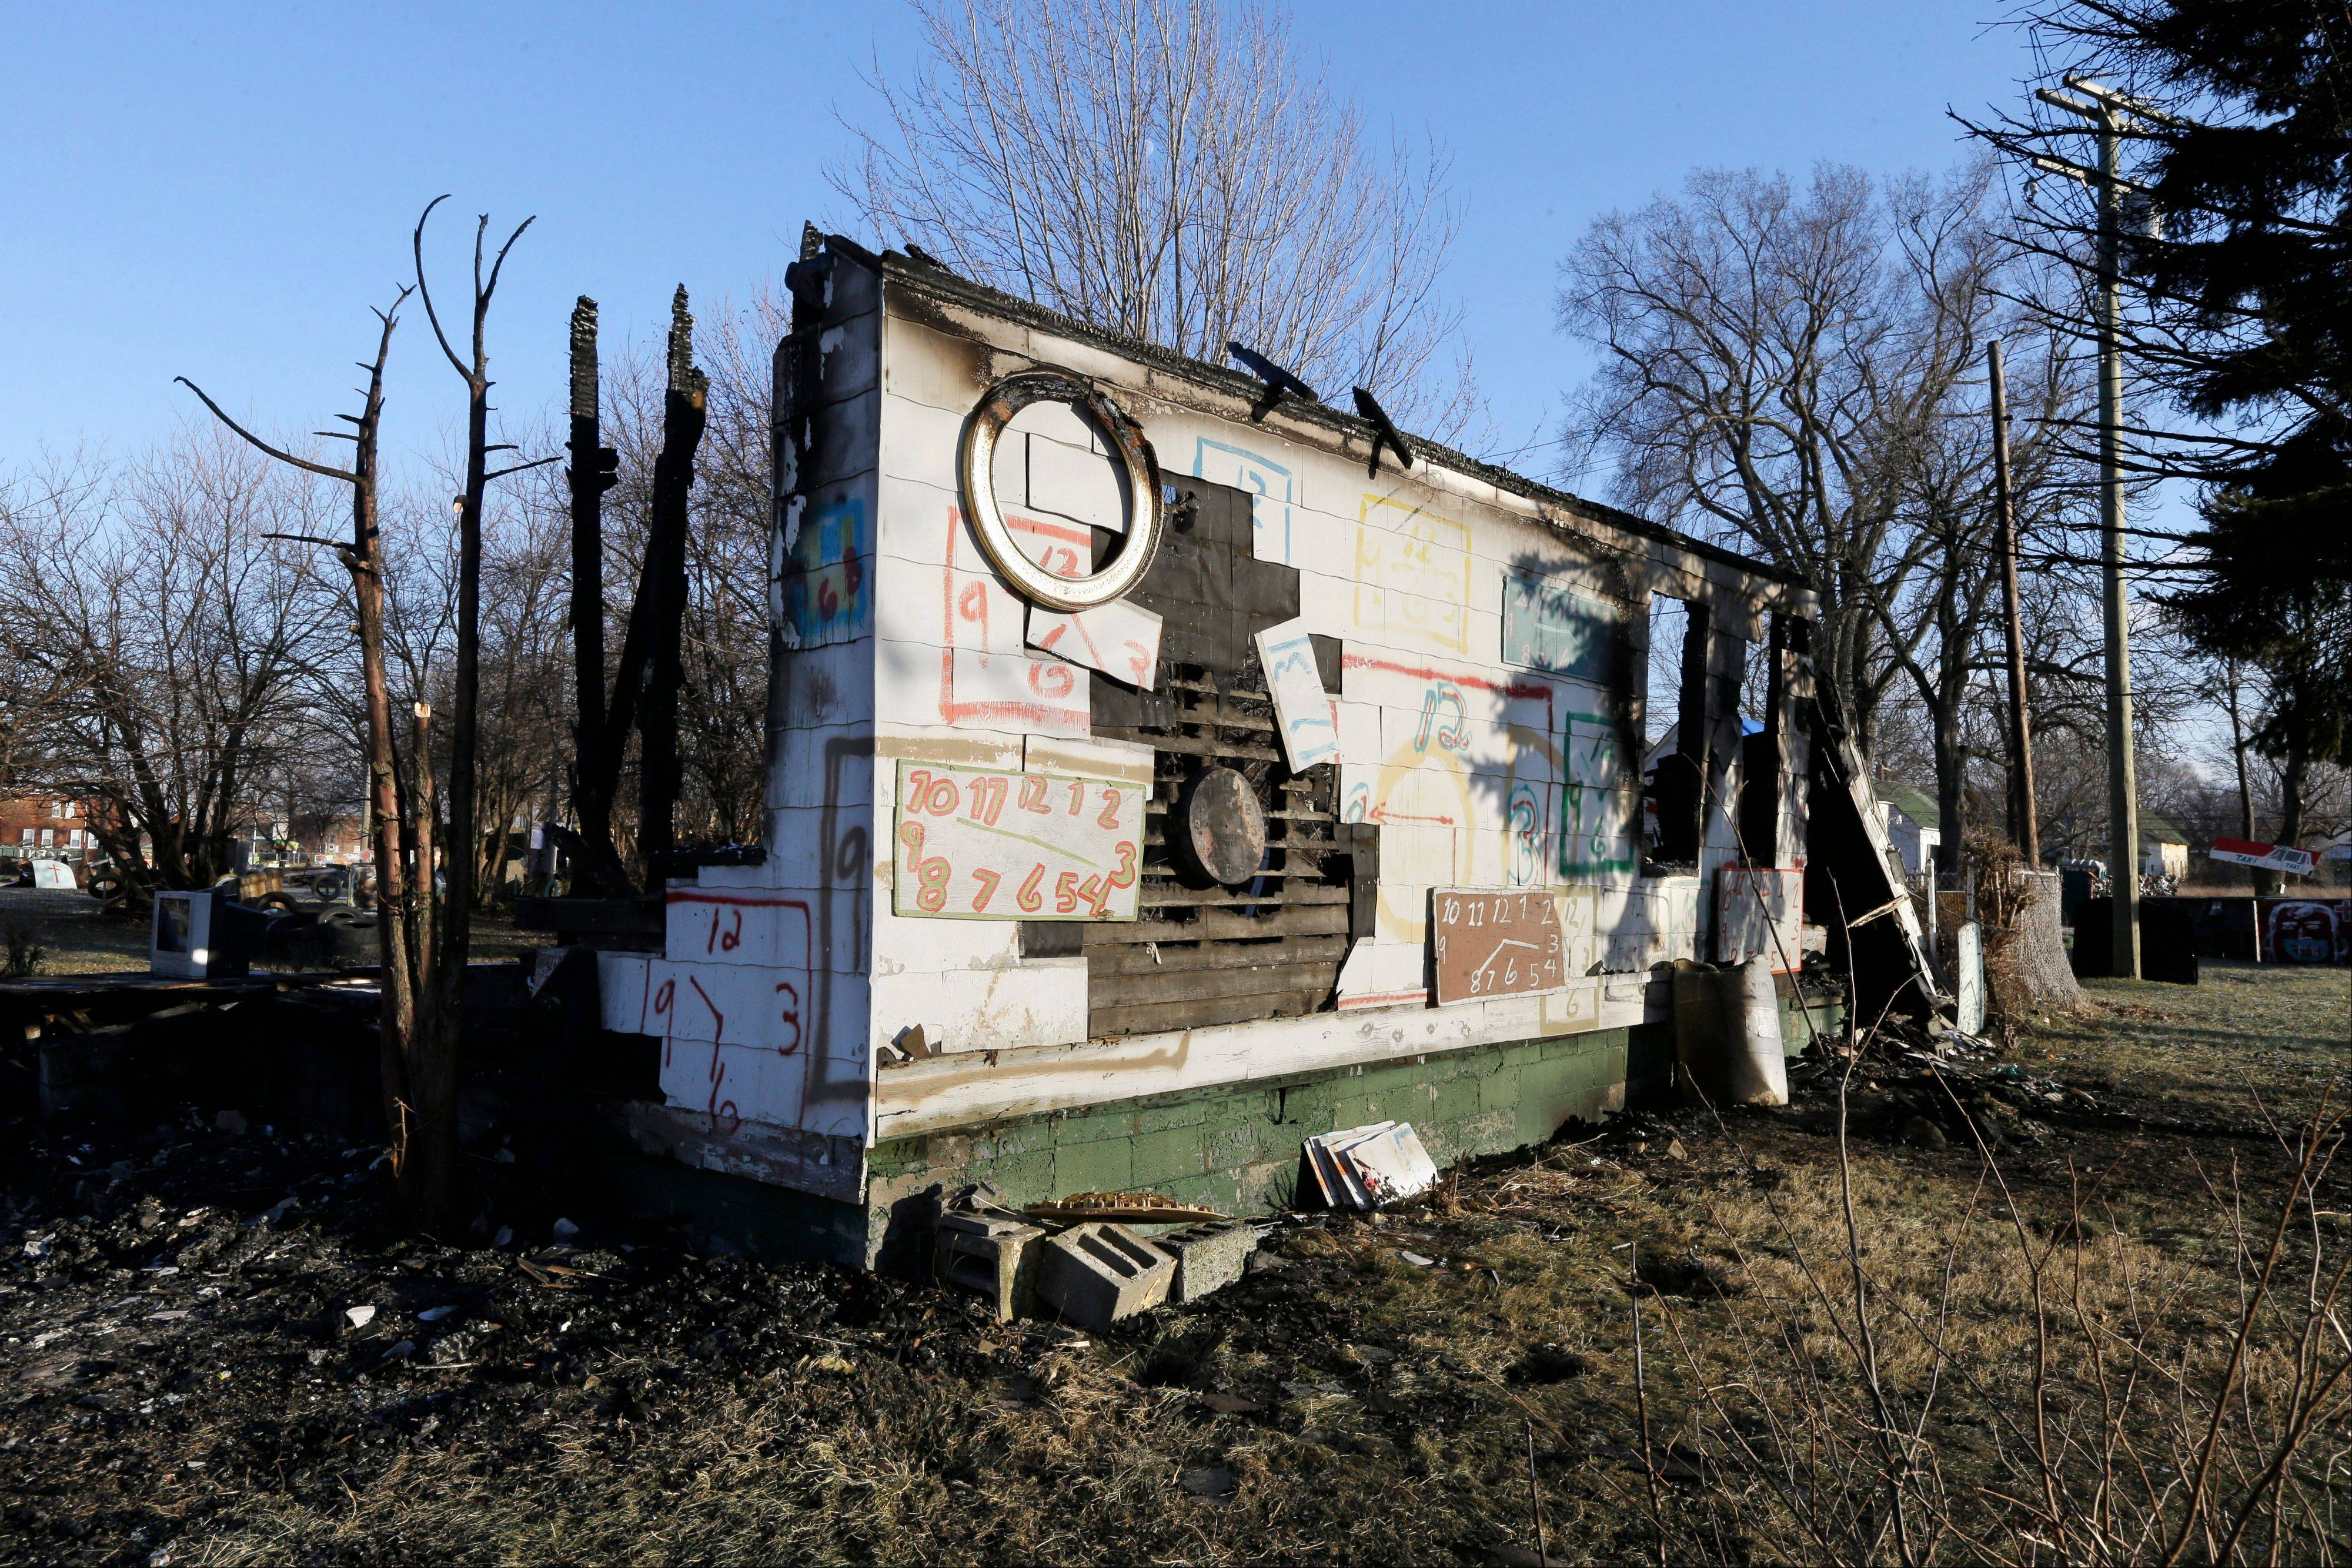 This is all that remains of the Clock House at the Heidelberg Project in Detroit. There have been at least eight fires since early May leading to questions about who might be targeting the installation.